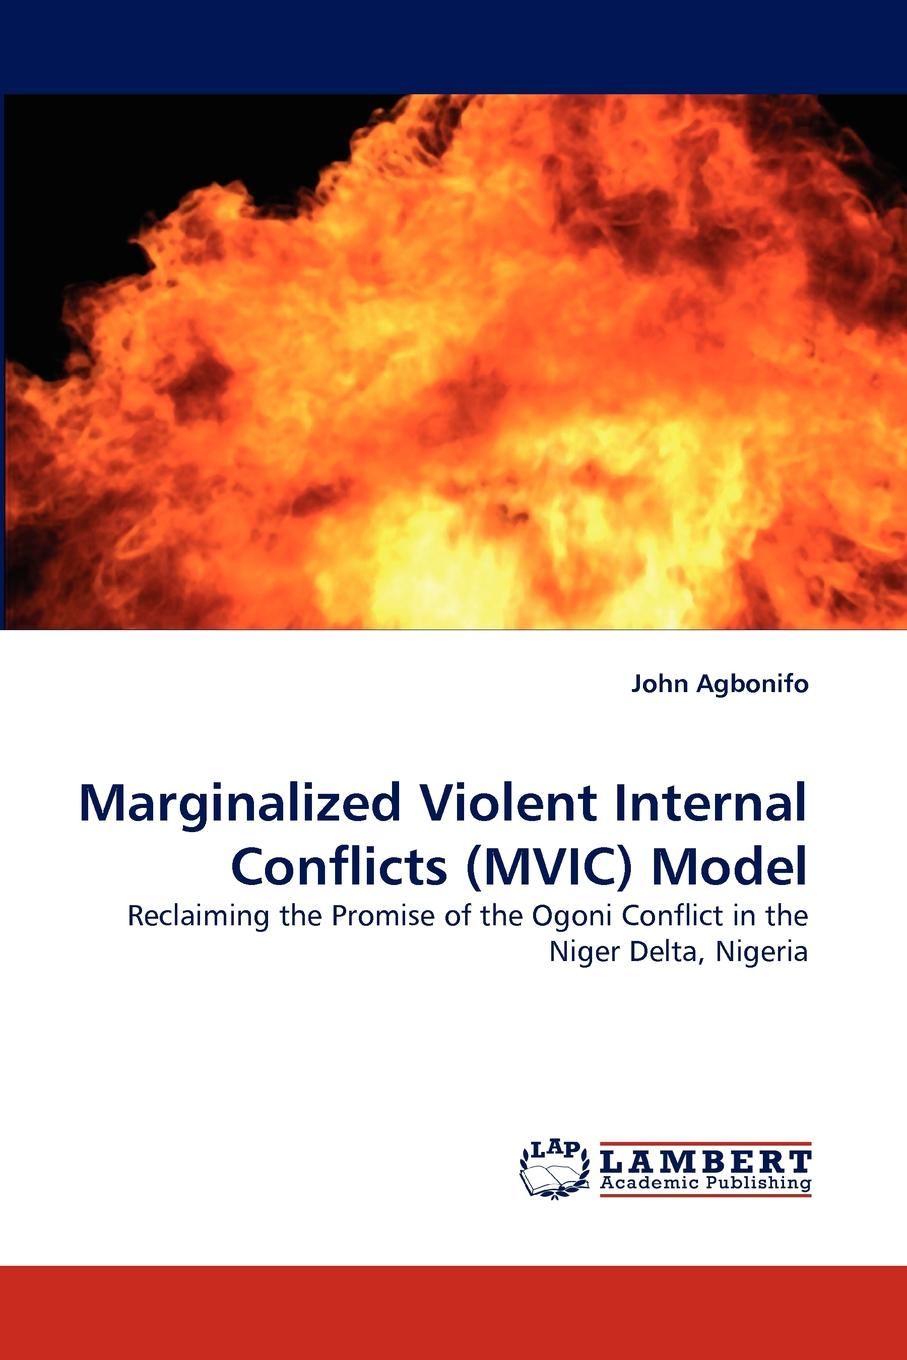 John Agbonifo Marginalized Violent Internal Conflicts (MVIC) Model d e berlyne conflict arousal and curiosity